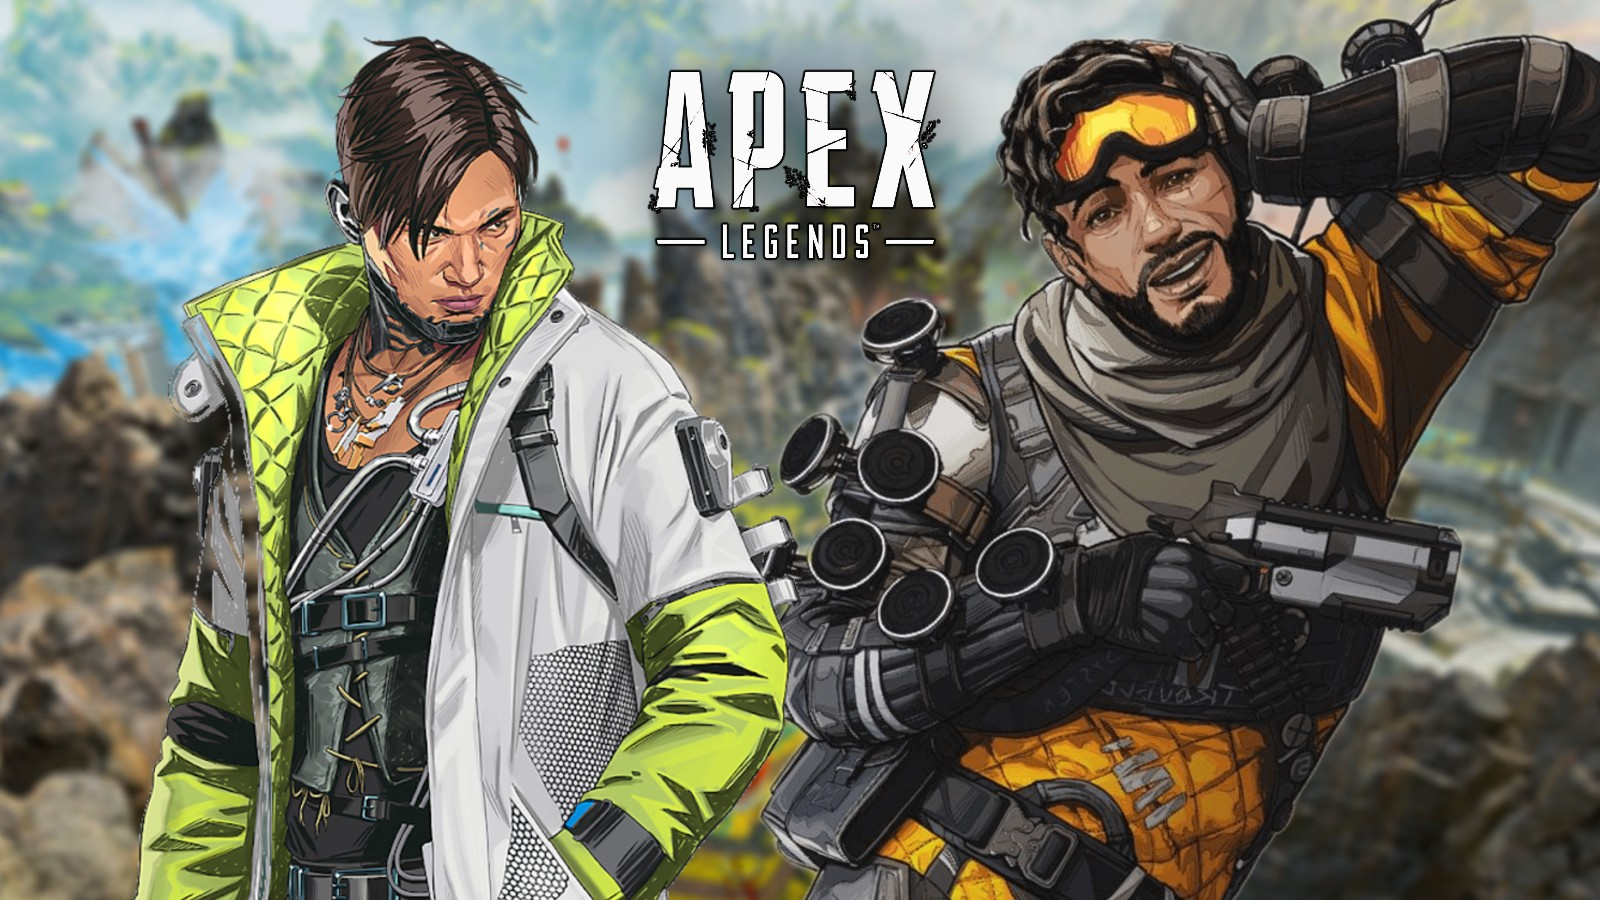 Mirage and Crypto Apex Legends